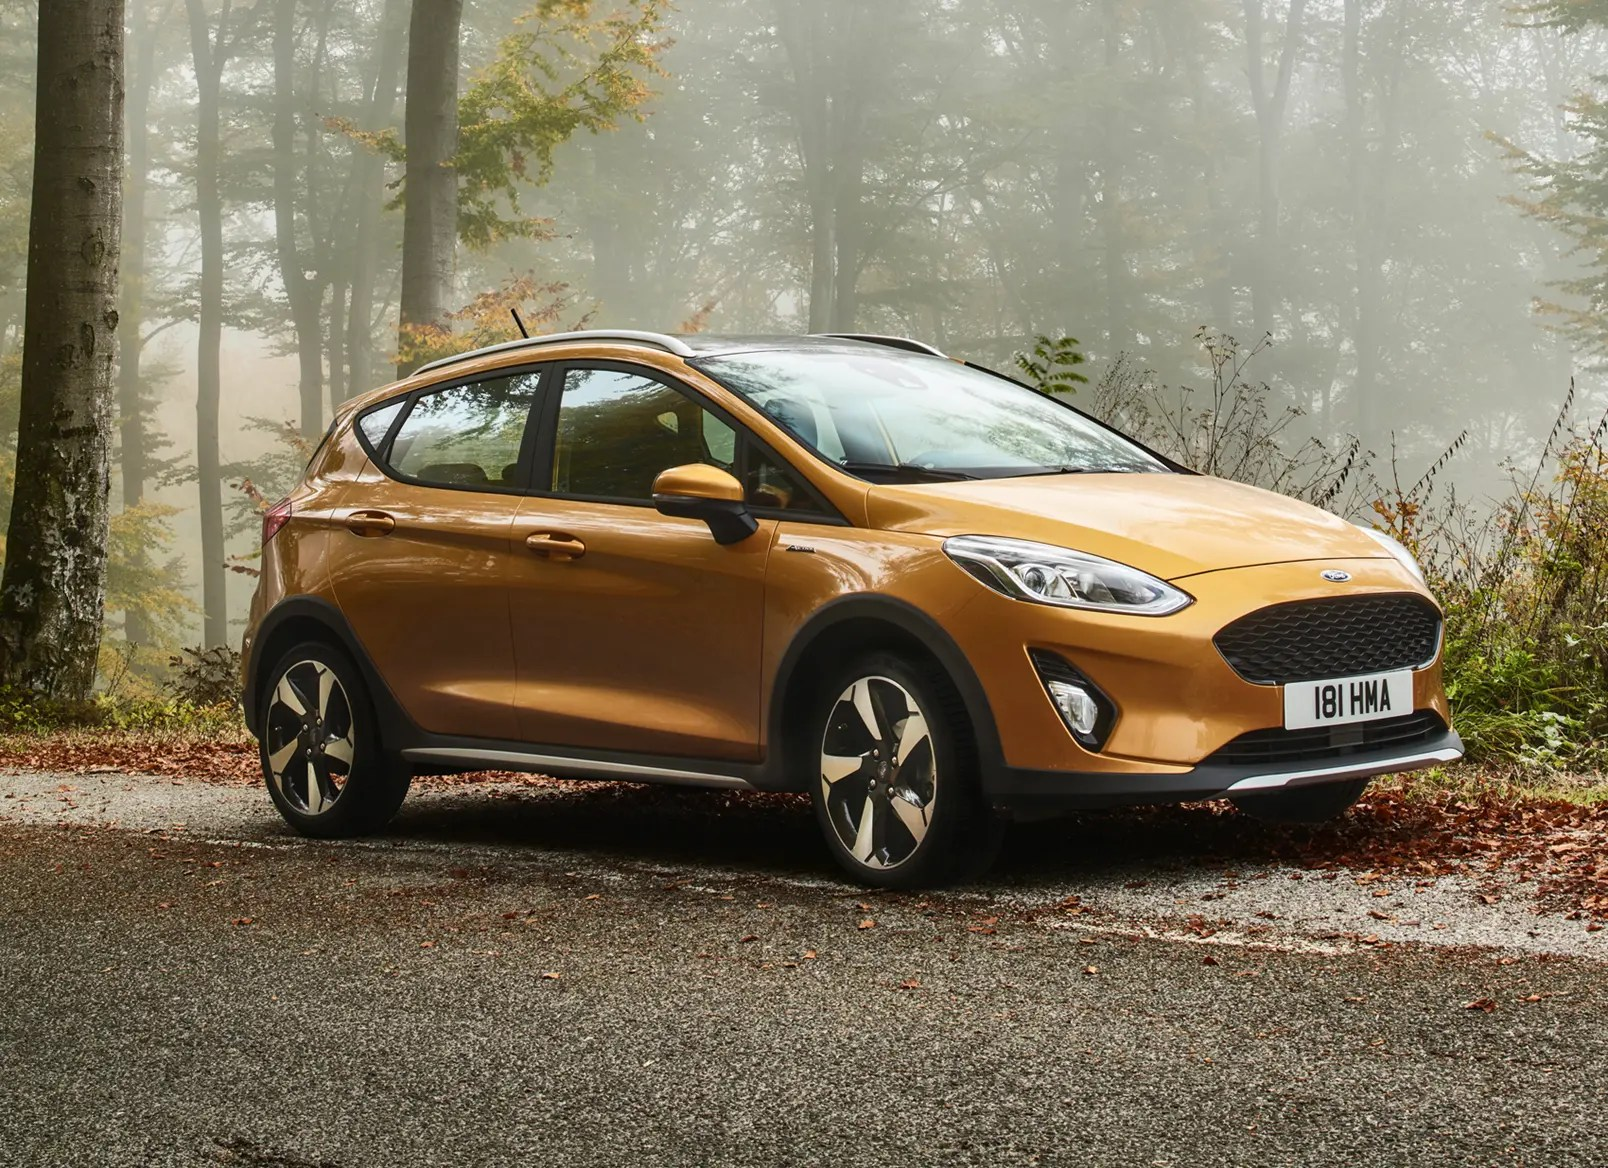 Ford Fiesta 2017 Specs Ford Fiesta Hatchback 2017 Photos Parkers